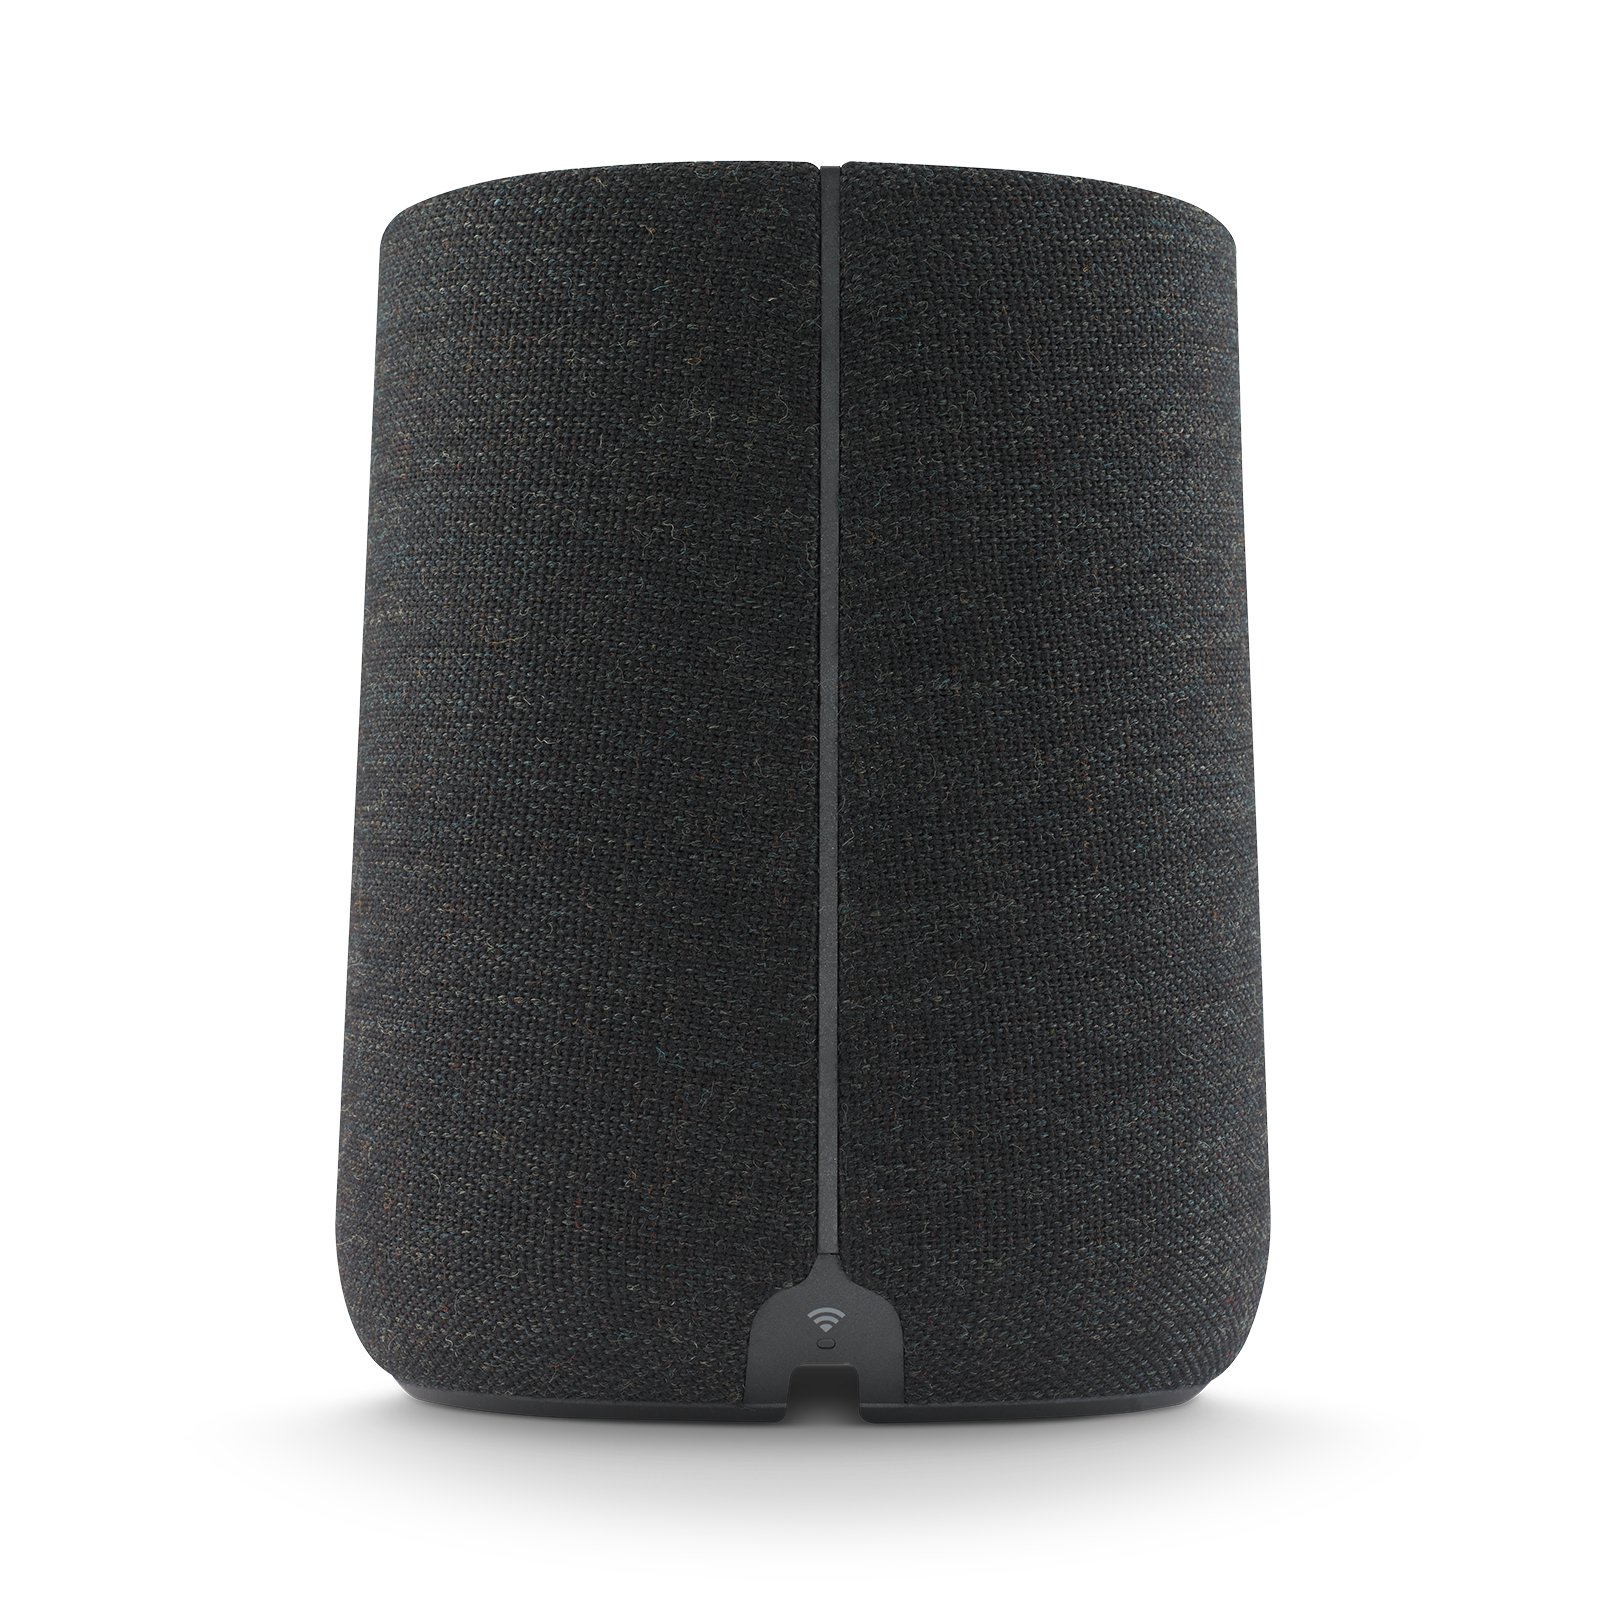 Harman Kardon Citation ONE - Black - Compact, smart and amazing sound - Back